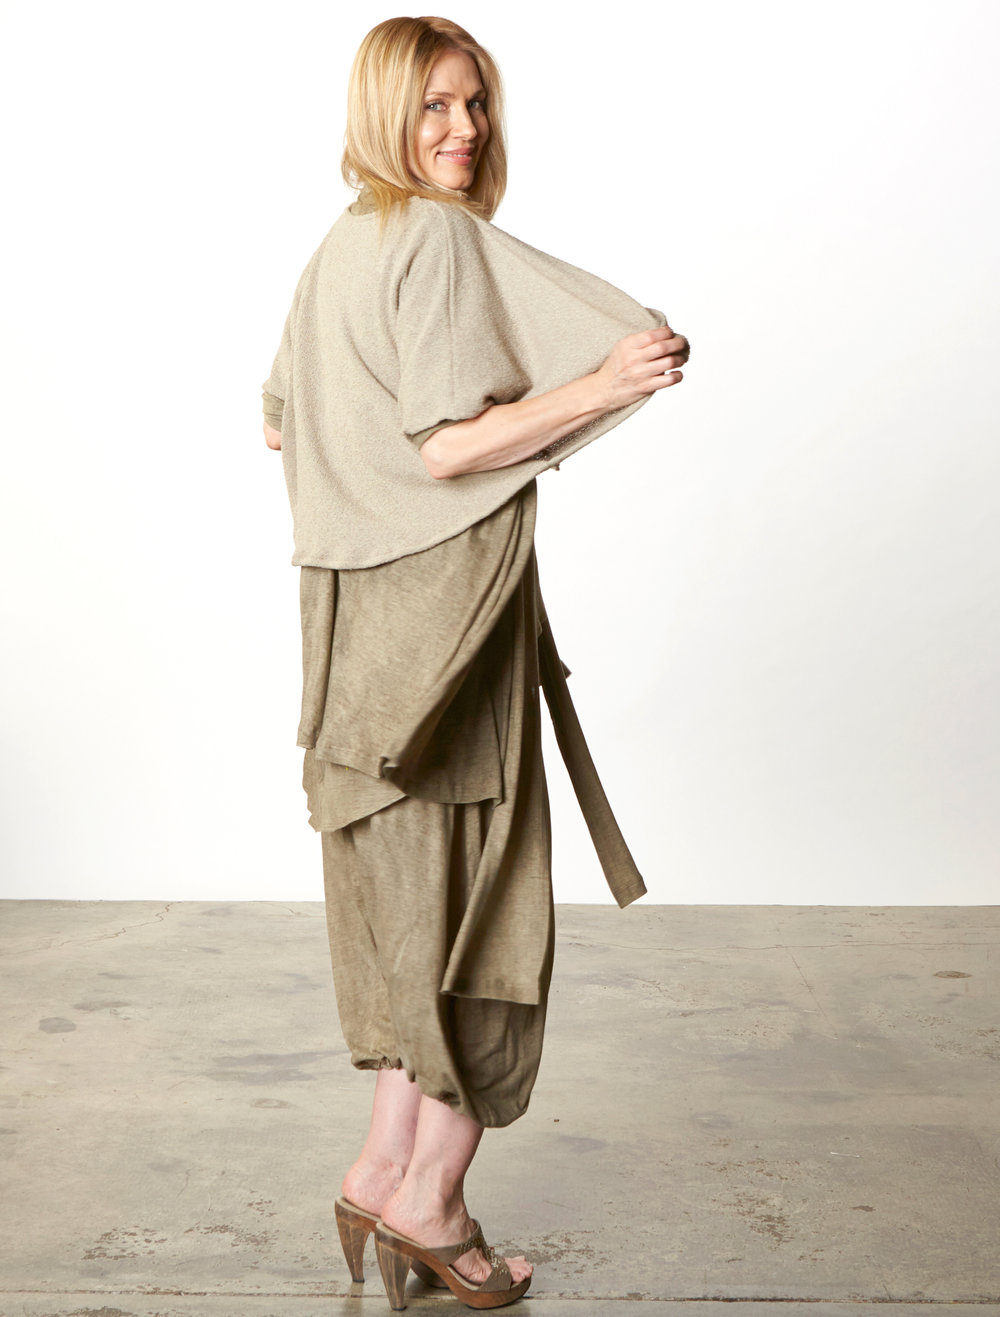 Cavendish Cardigan, Luis Tunic, Gaucho Pant in Taupe Italian Delave Cotton, Vlad Sweater in Taupe Italian Cotton/Nylon